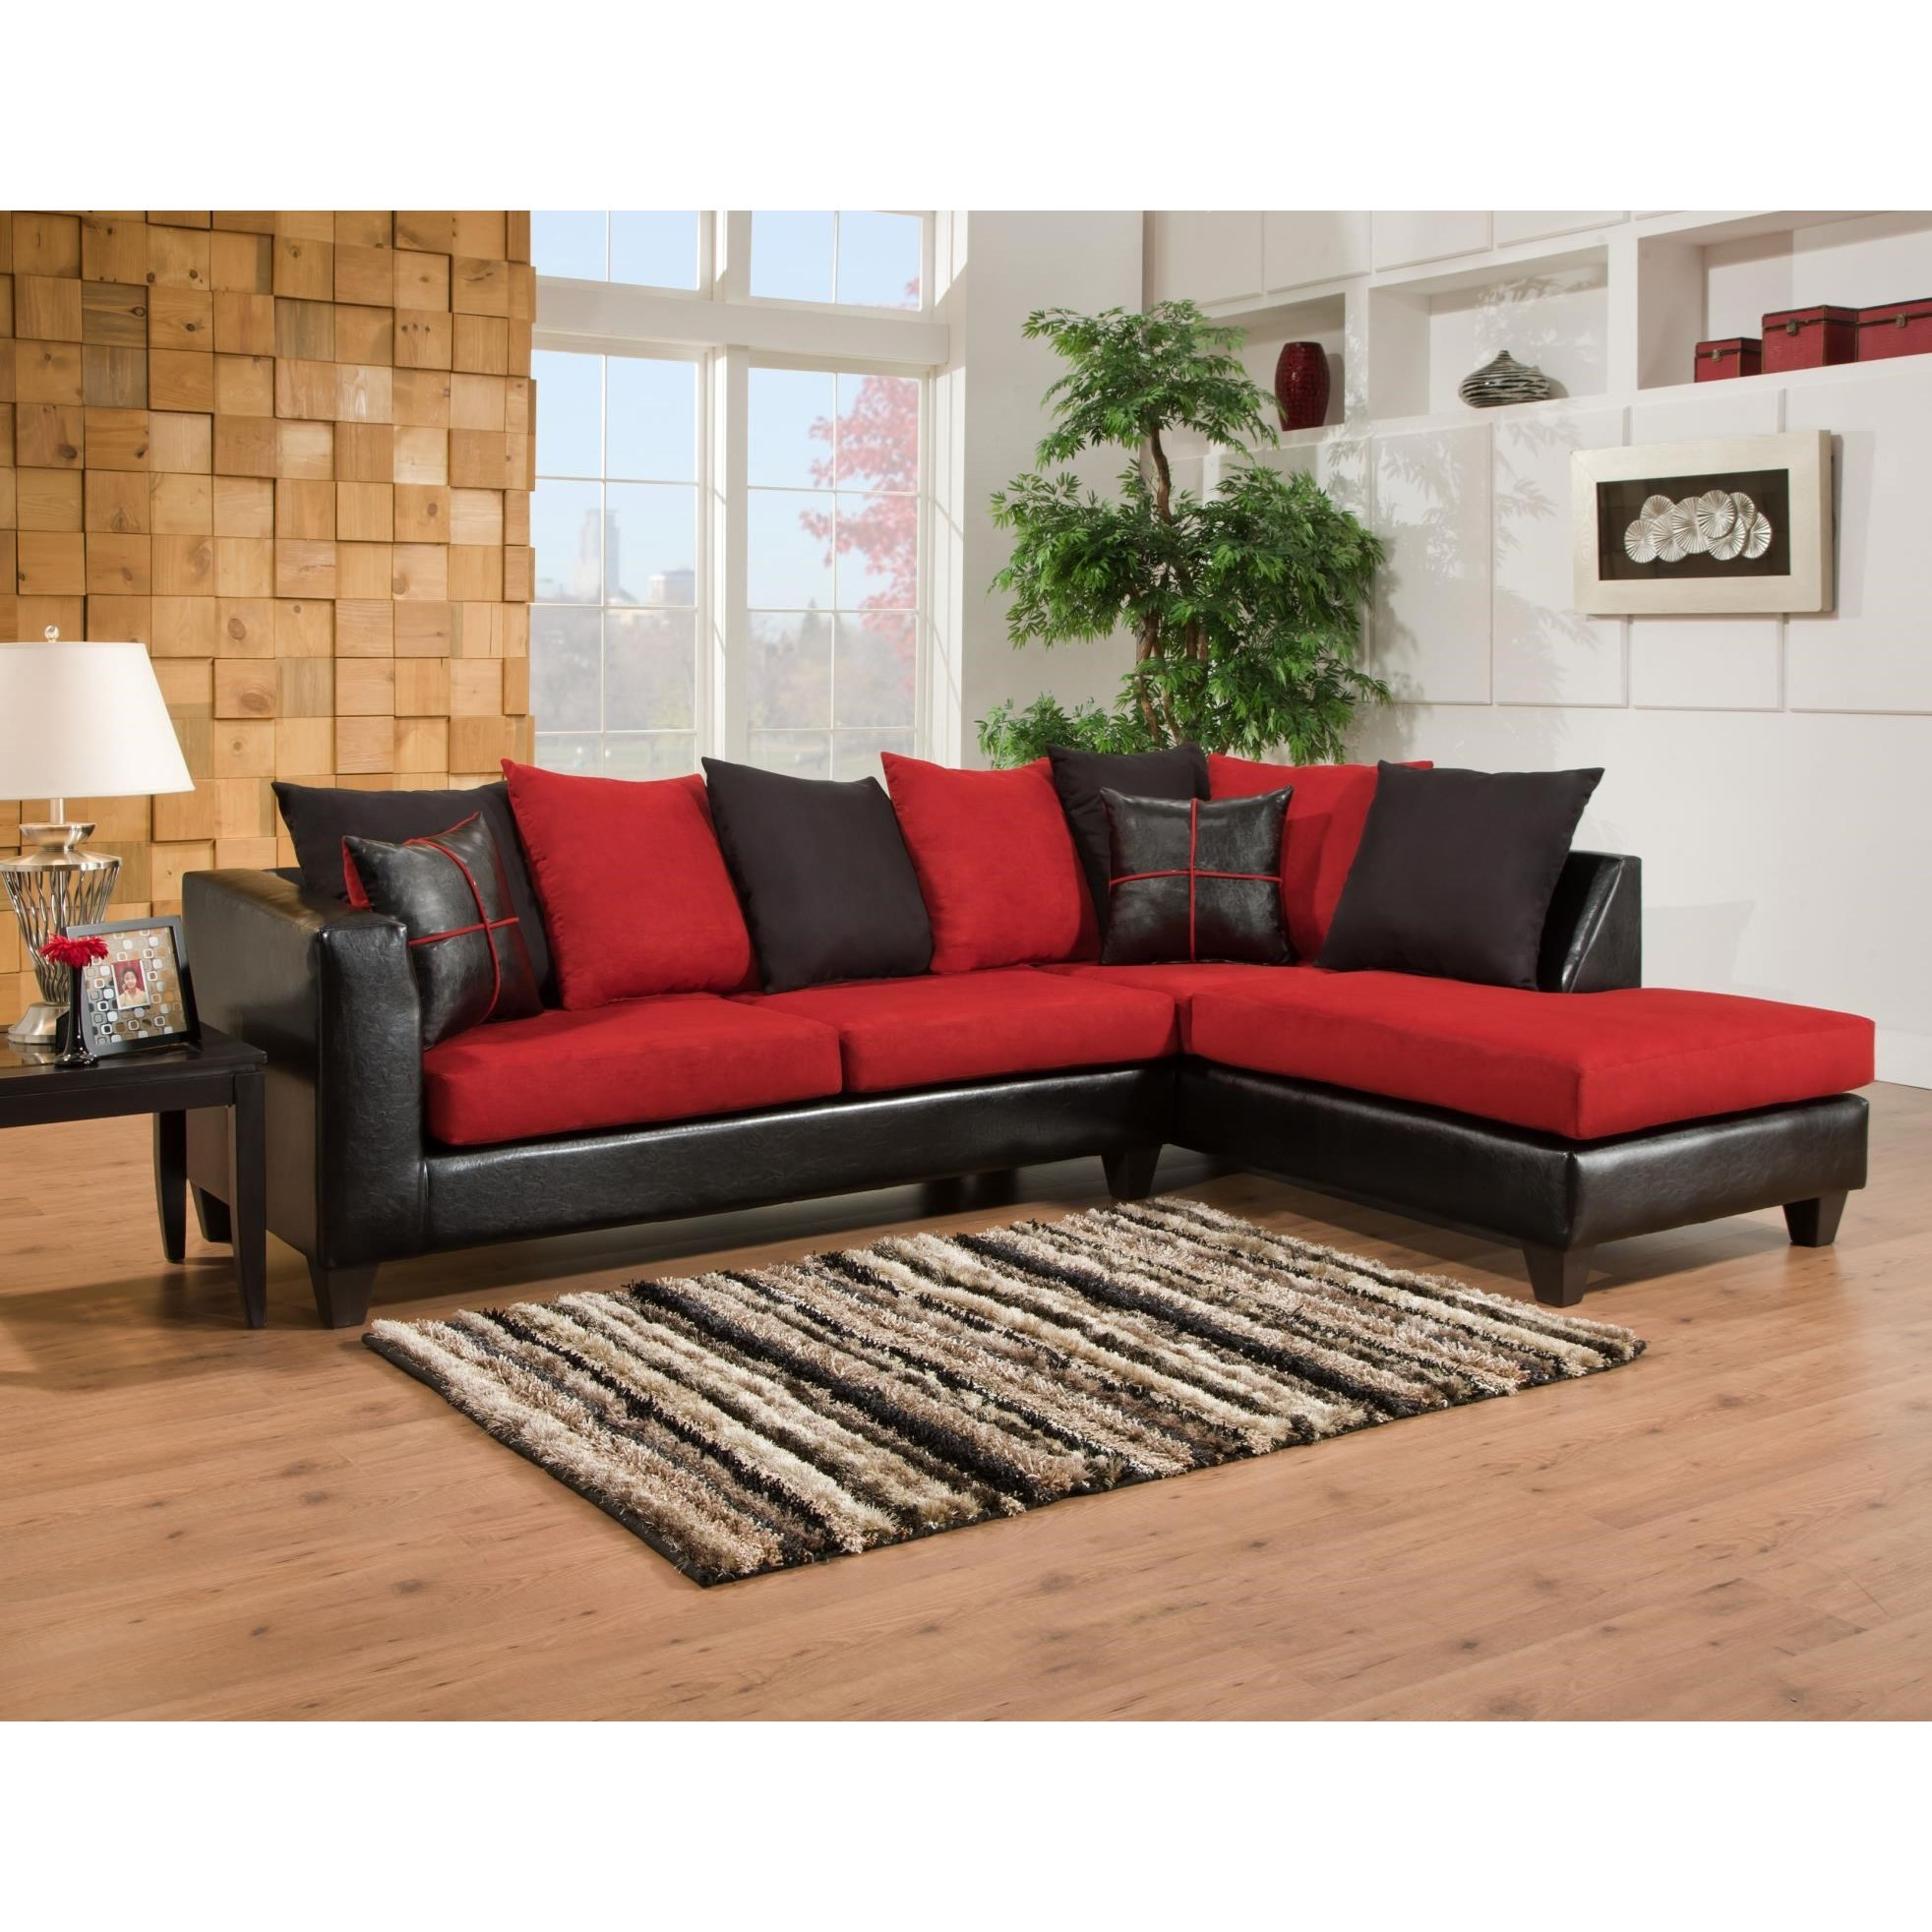 4184 Sectional by Delta Furniture Manufacturing at Dream Home Interiors